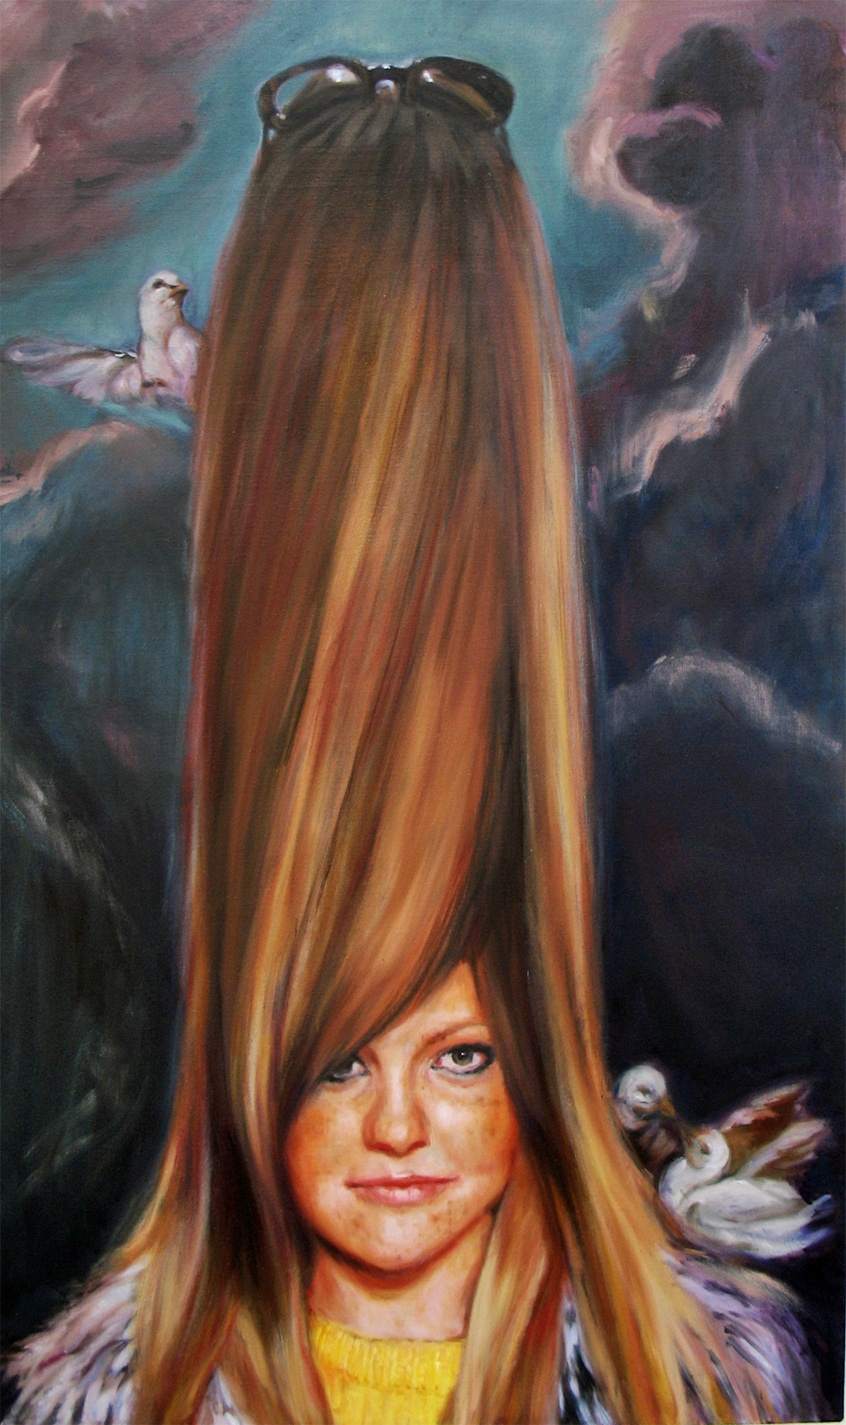 'Lisa has her head in the clouds' 160x195 cm, oil on linen